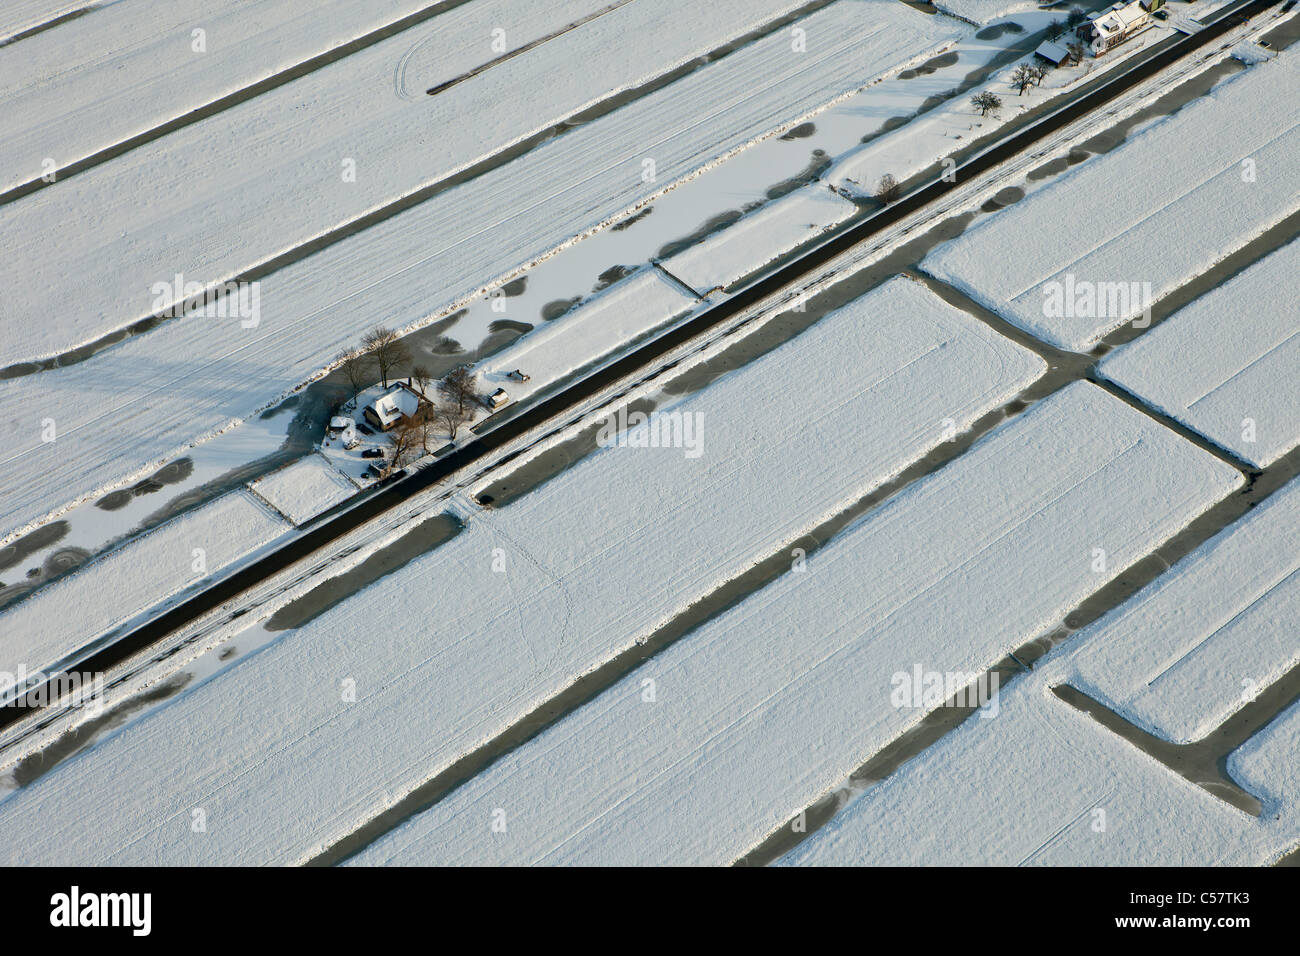 The Netherlands, near Schoonhoven, farm in snow. Aerial. - Stock Image